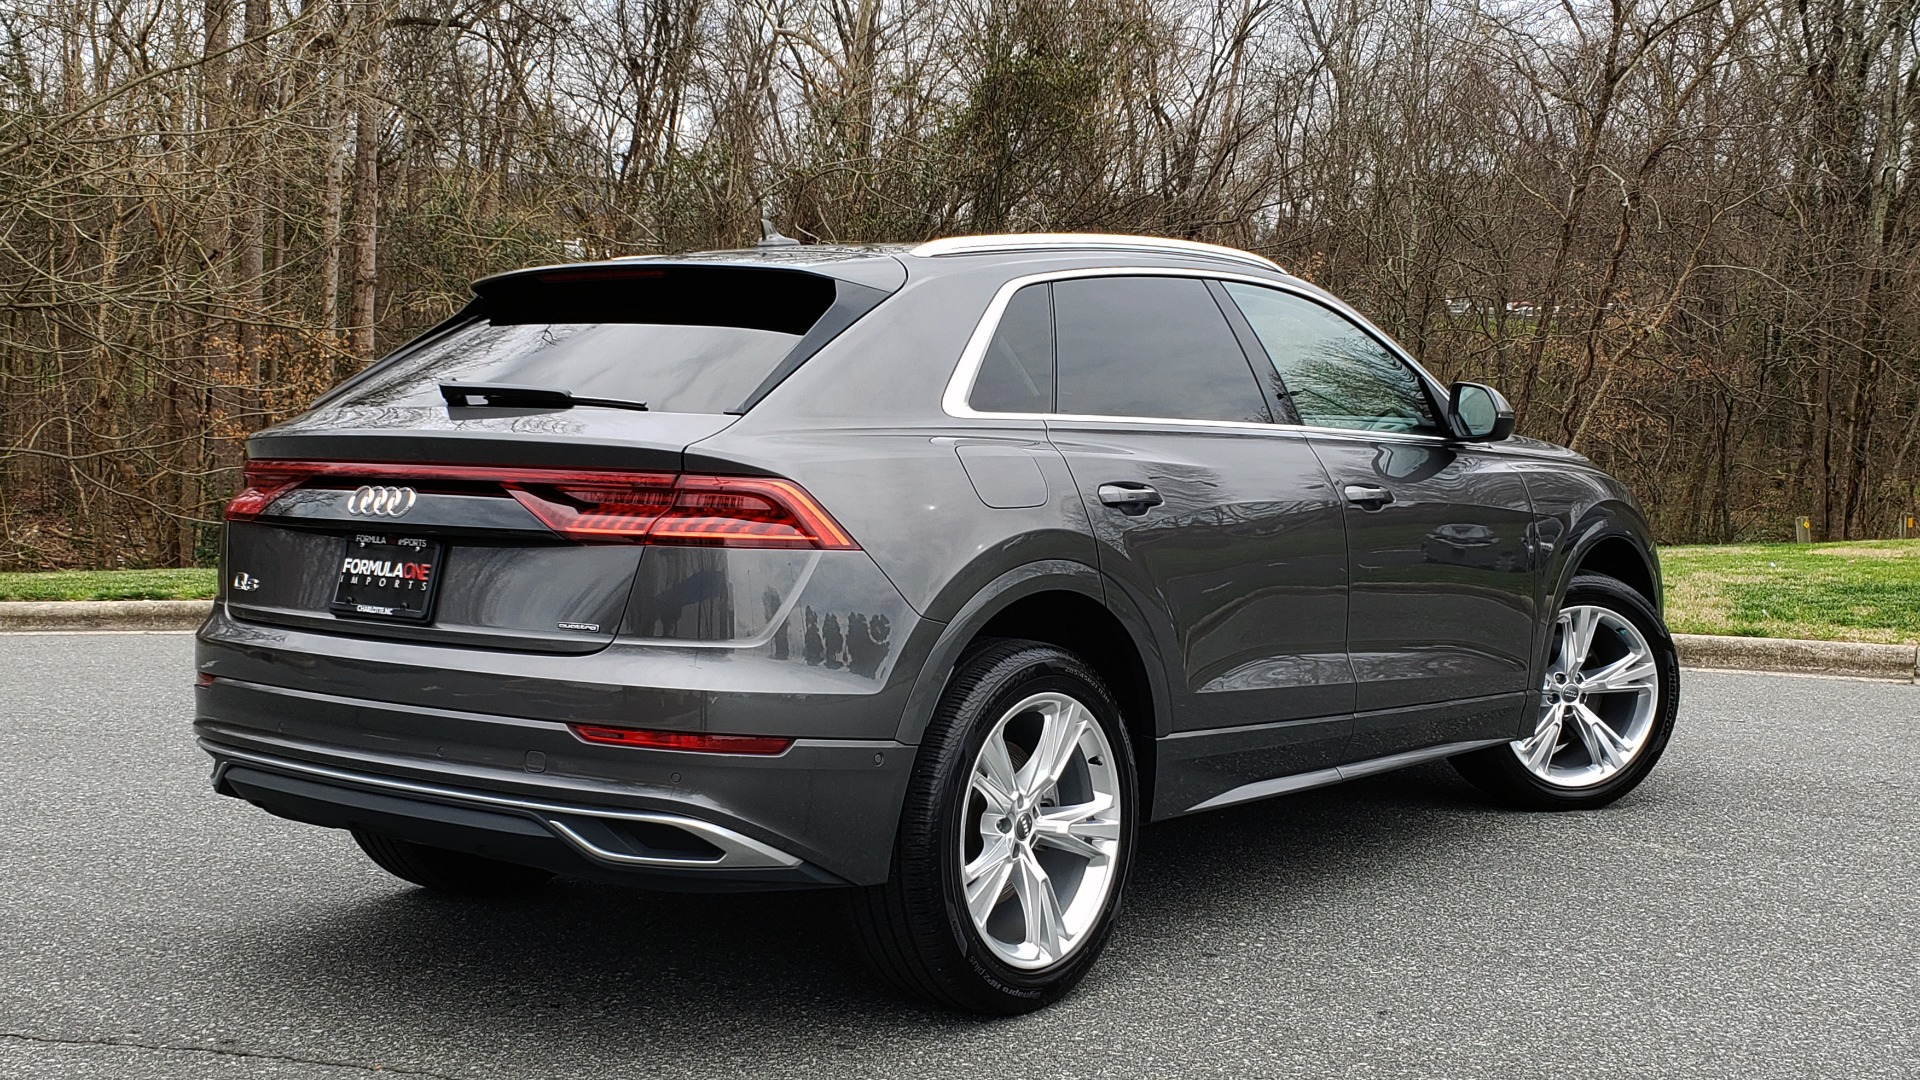 Used 2019 Audi Q8 PRESTIGE 3.0 / NAV / SUNROOF / BO SND / COLD WTHR / REARVIEW for sale Sold at Formula Imports in Charlotte NC 28227 4